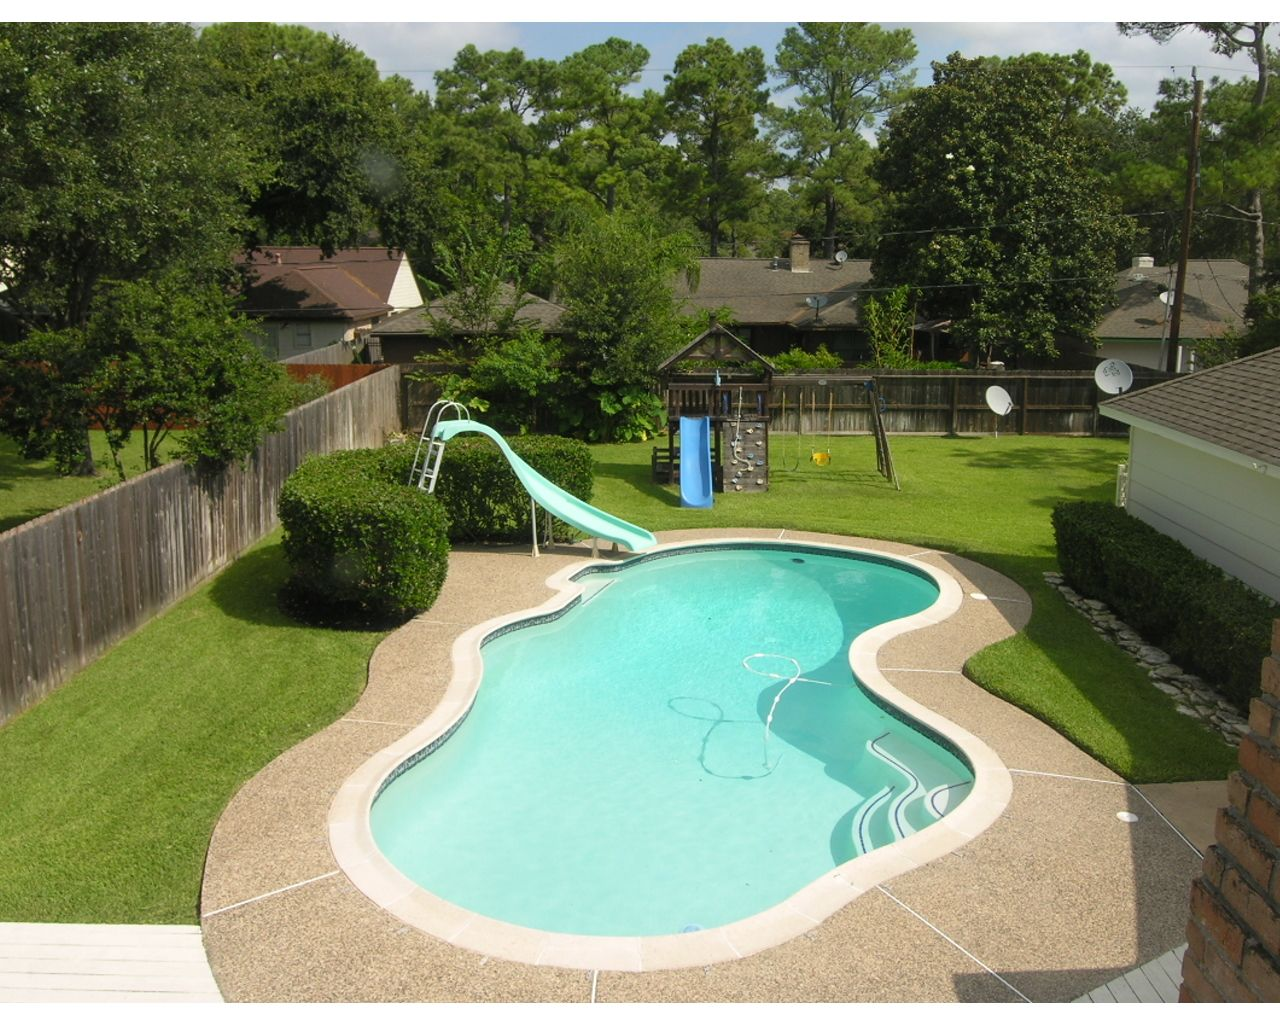 Backyard pools | Great View of Large Backyard & Pool but ...